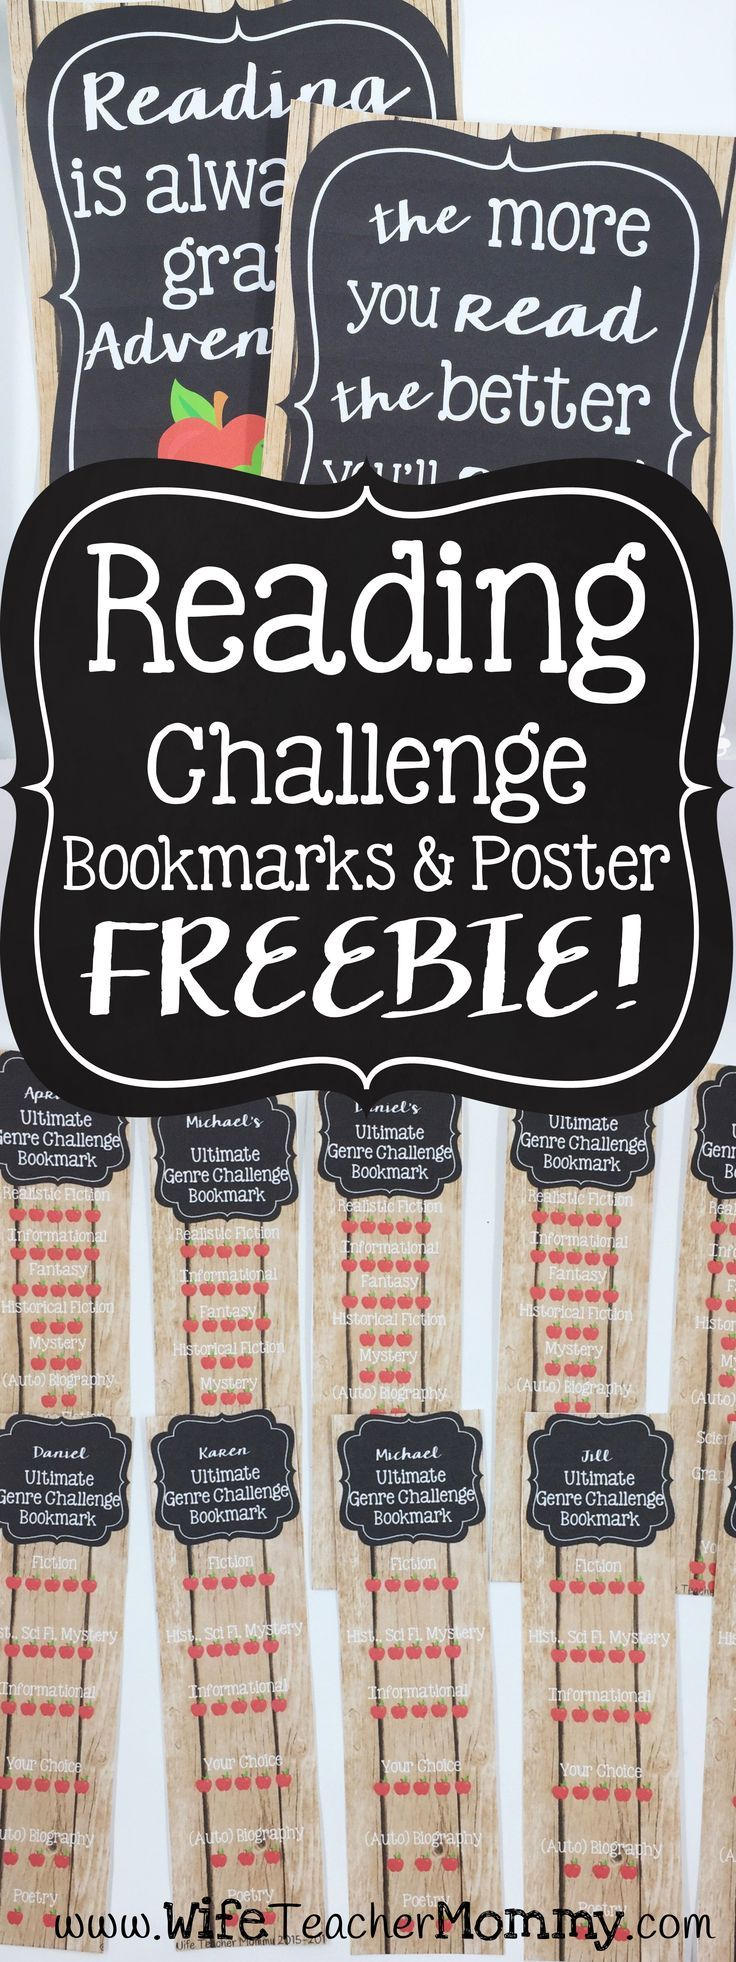 Grab these FREE Editable reading challenge bookmarks for your classroom! Perfect for getting your students to read a variety of genres. Great for back to school! A reading challenge poster is included as well. http://www.wifeteachermommy.com/2016/07/the-s